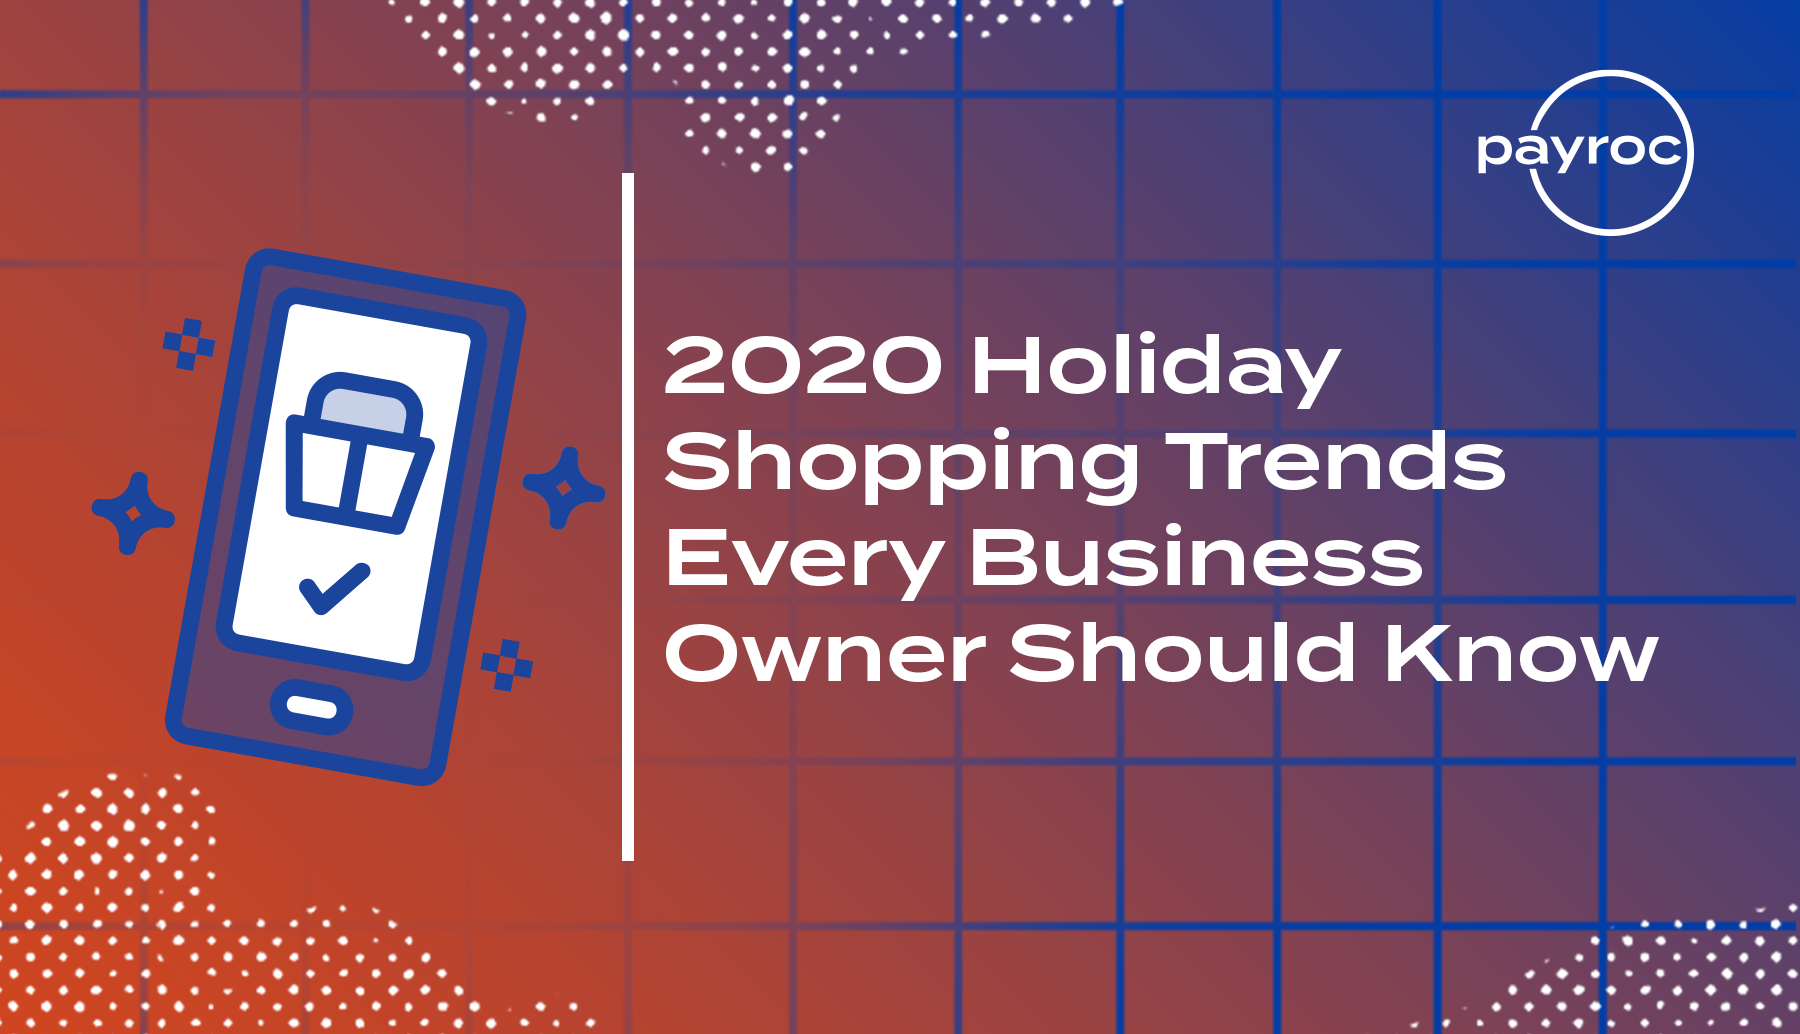 holiday shopping trends every business owner should know